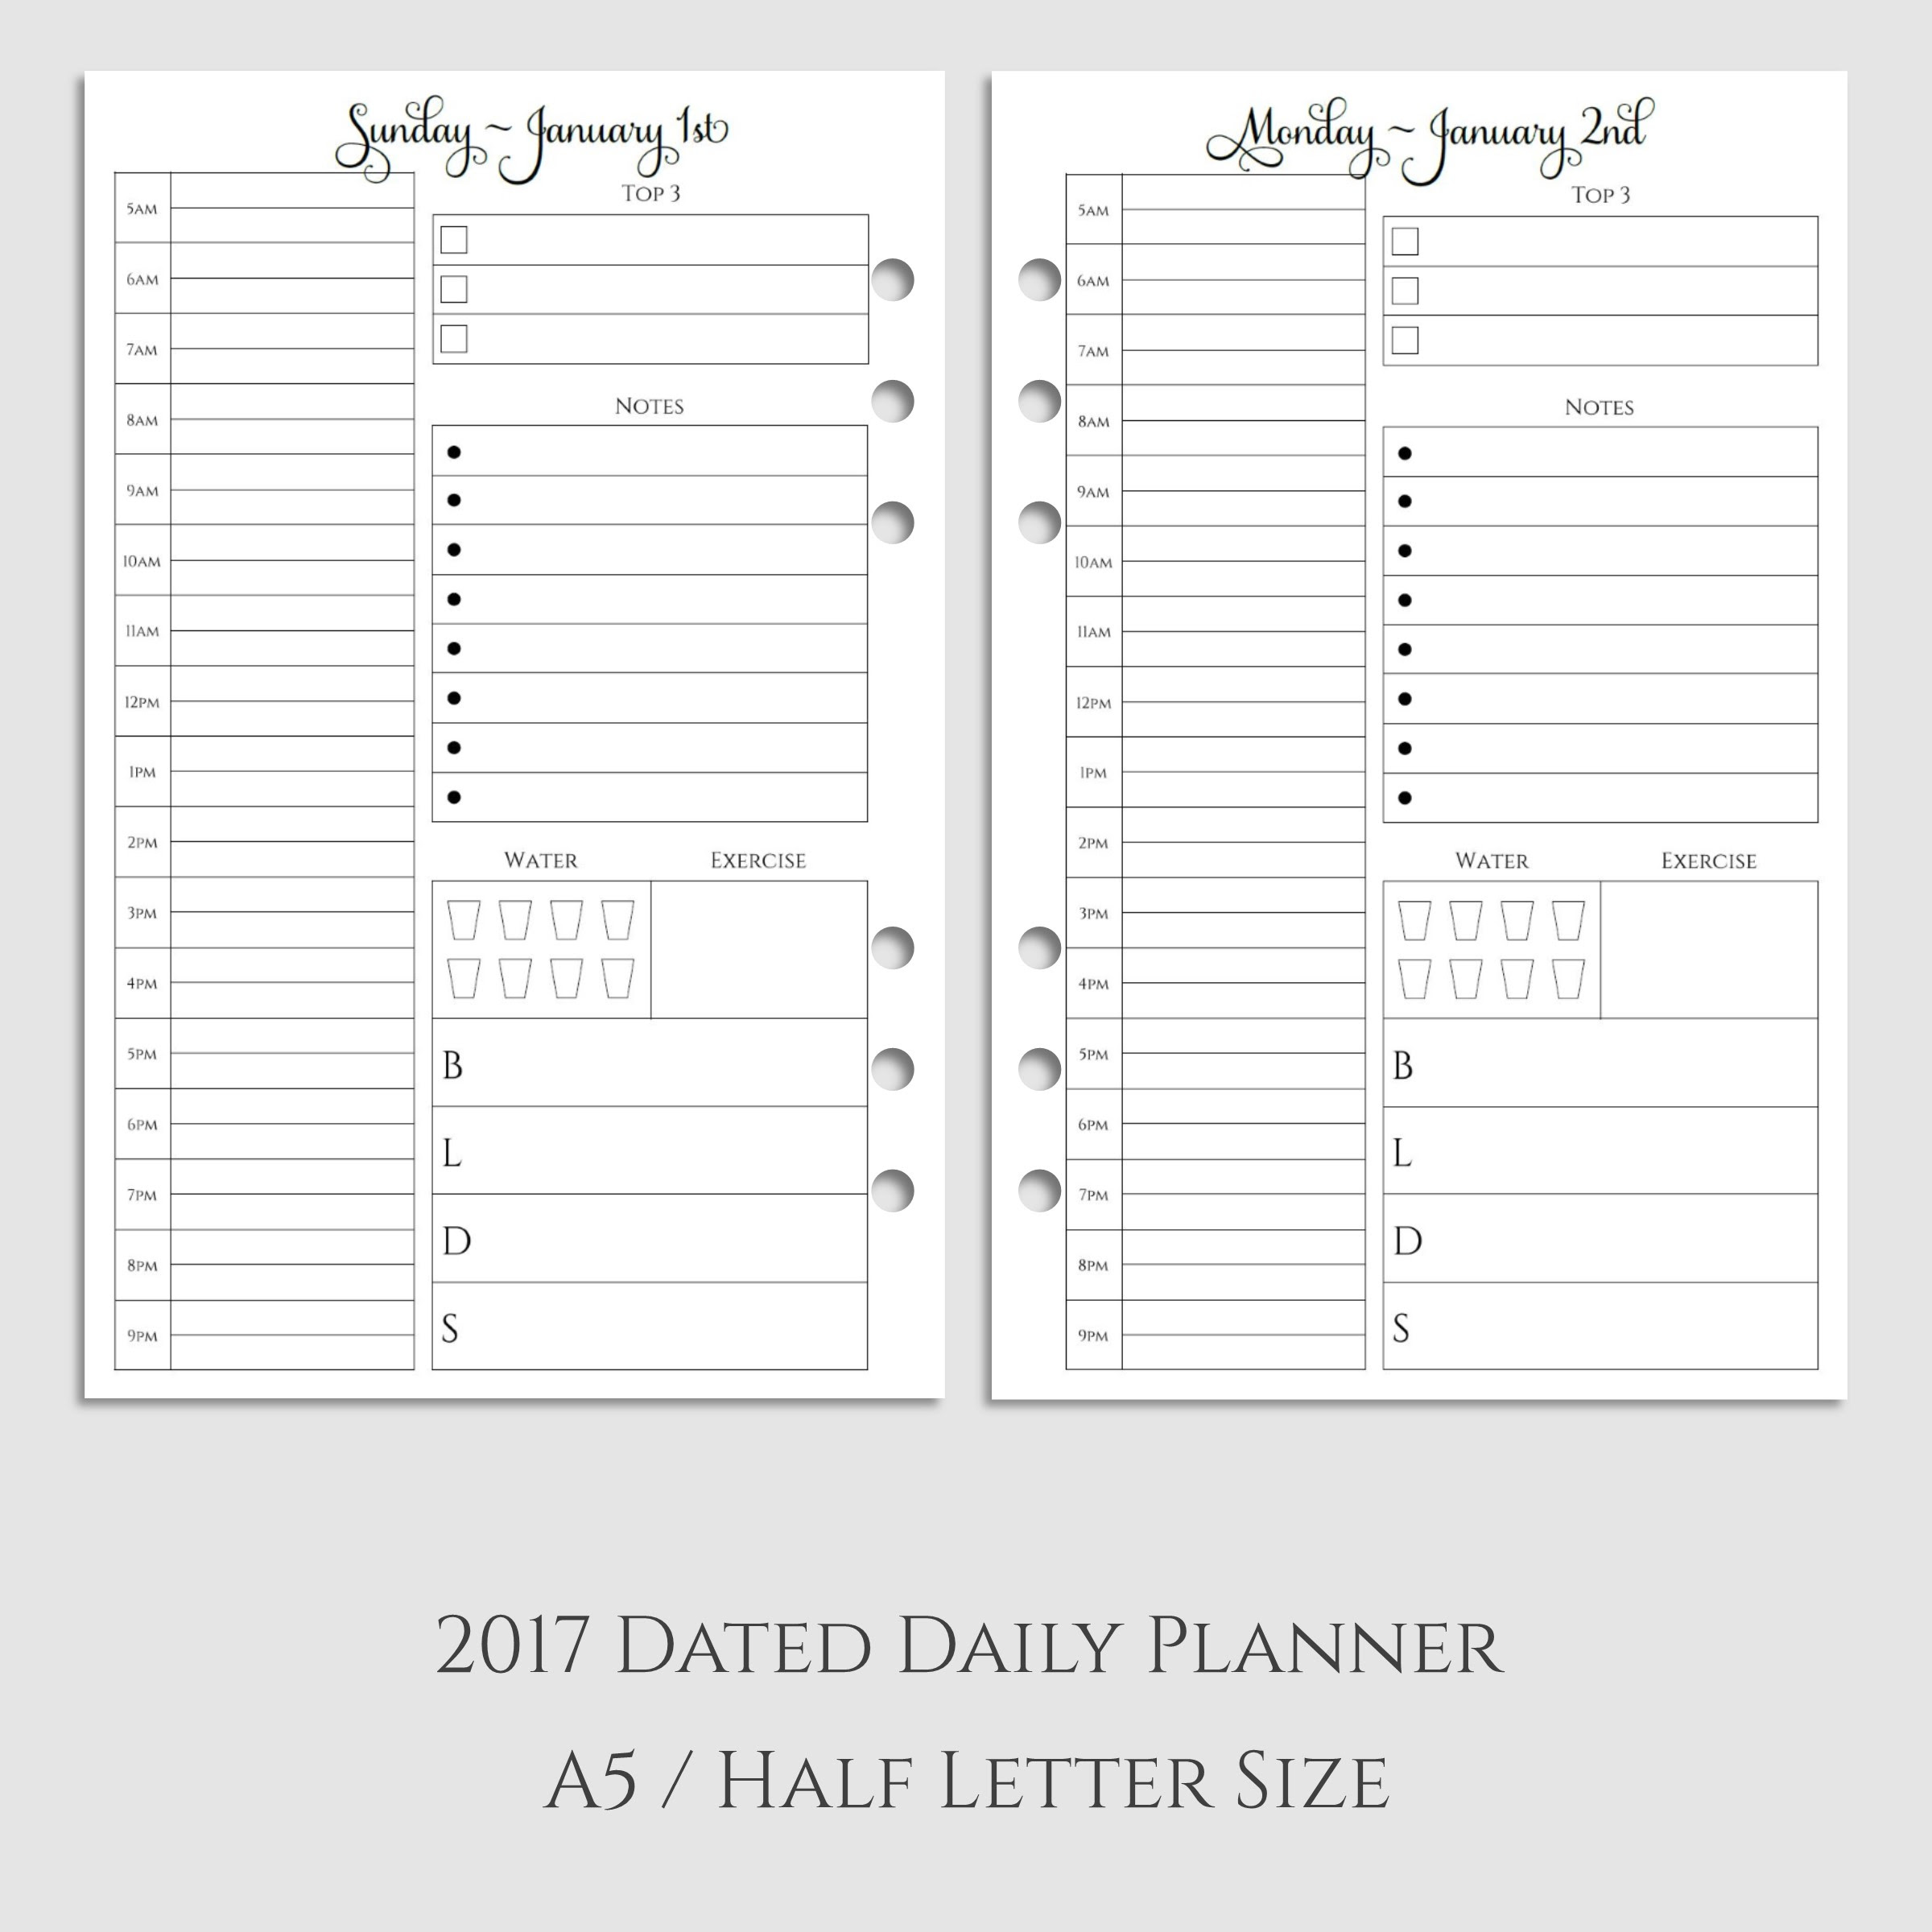 2017 Daily Planner Inserts with Health & Meal Tracking - Sarcasm ...